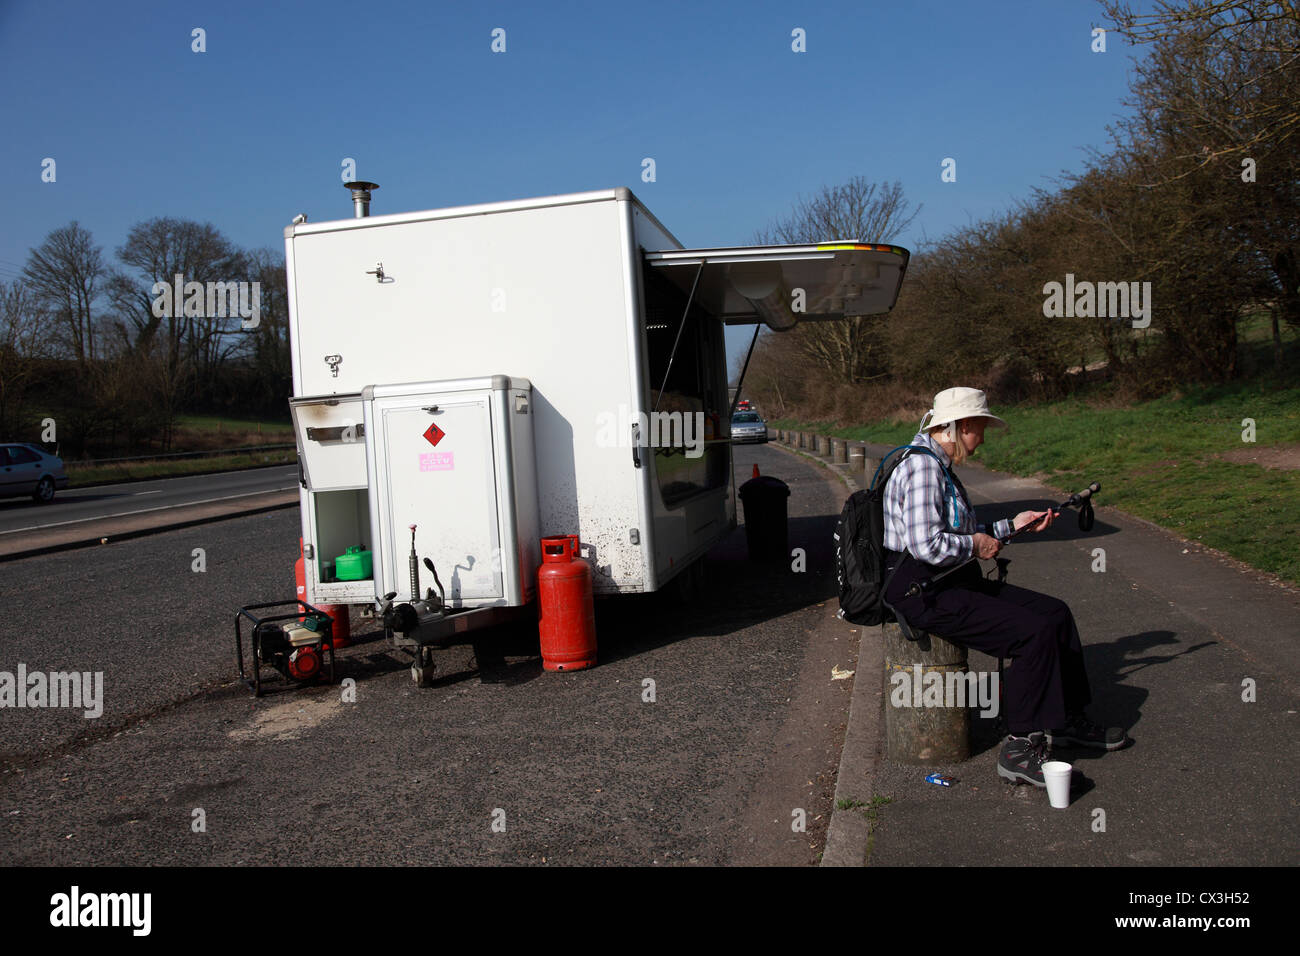 Lady walker having a cup of tea from a roadside cafe and preparing her sticks for a walk - Stock Image